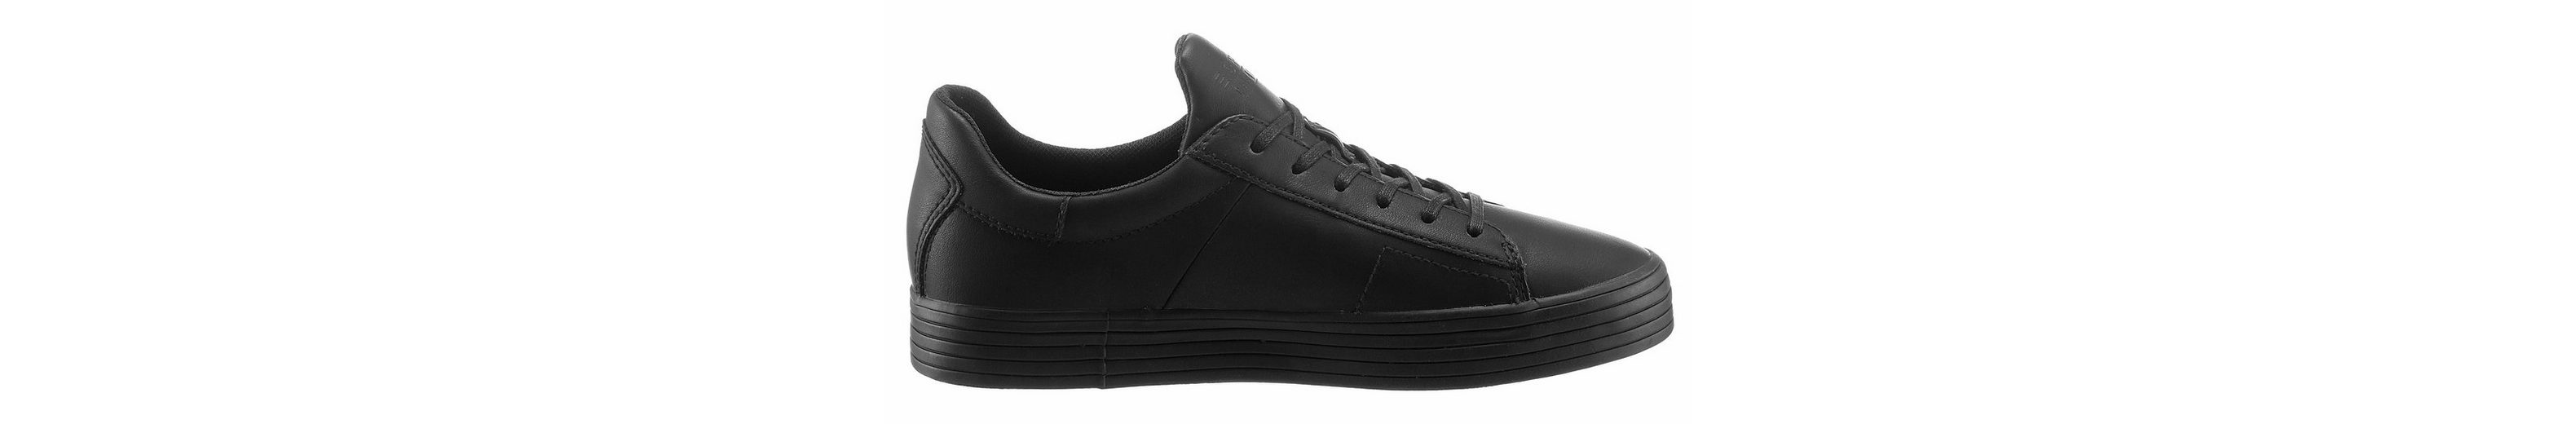 ESPRIT Sita Lace Up Sneaker, im Basic-Look